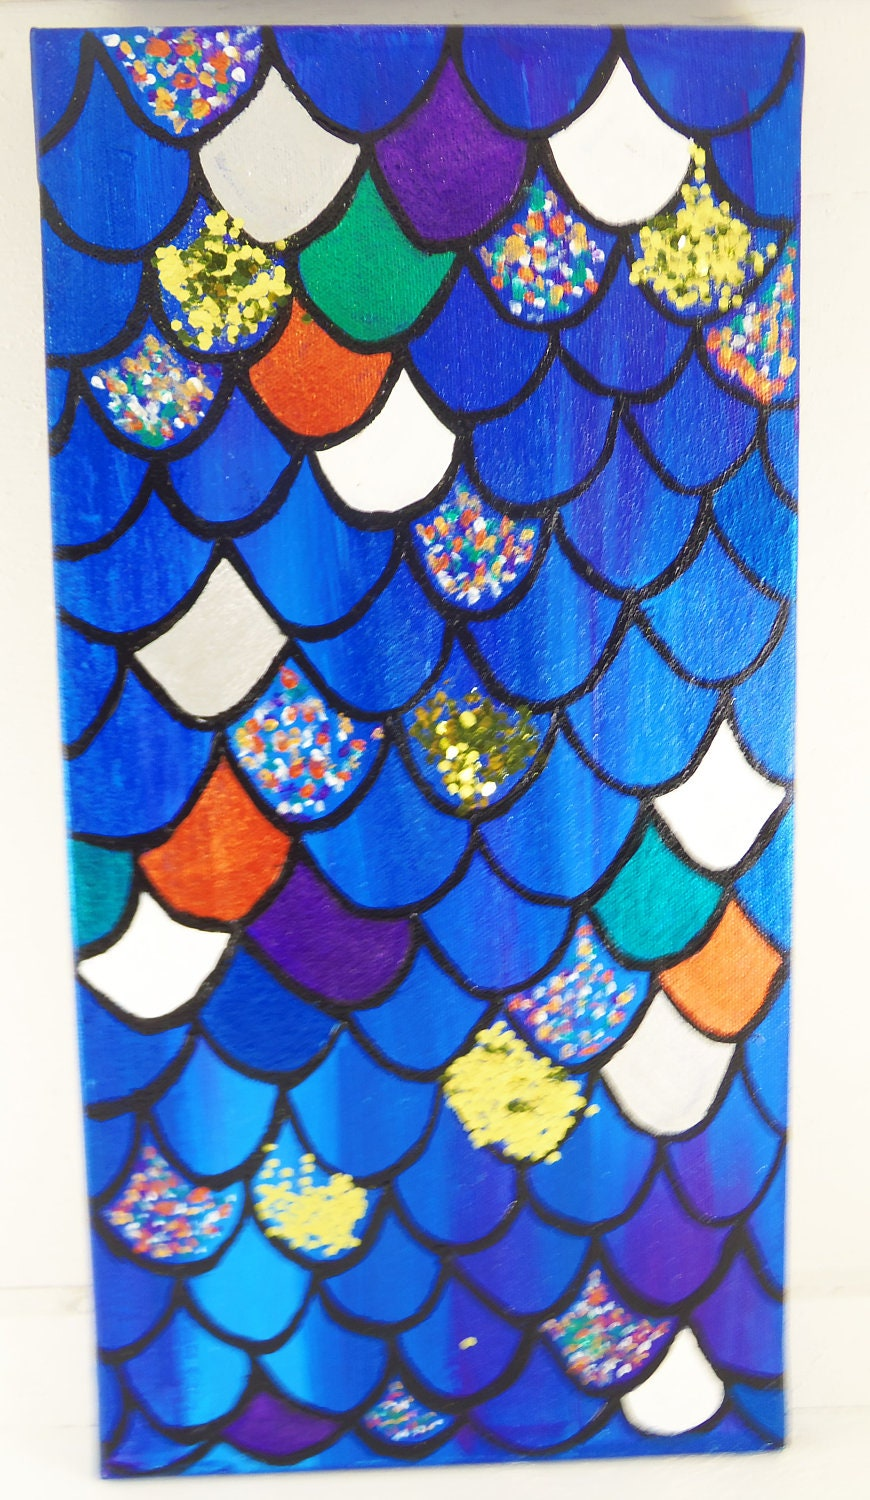 8x16 Blue Mermaid Scale Painting - Mixed Media